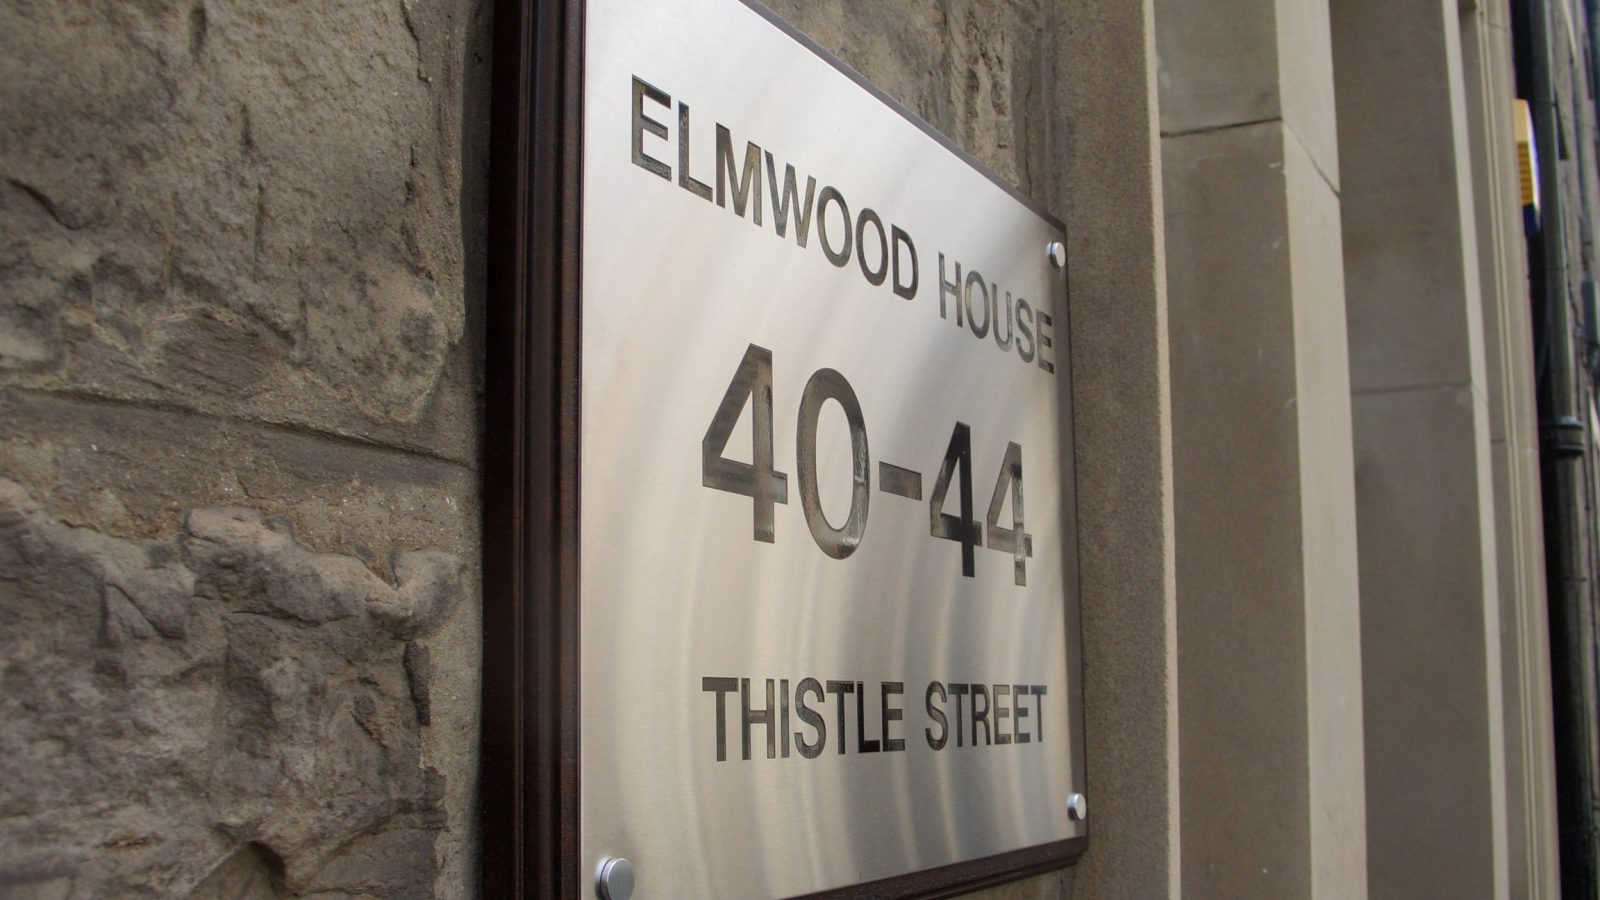 Elmwood House Thistle Street